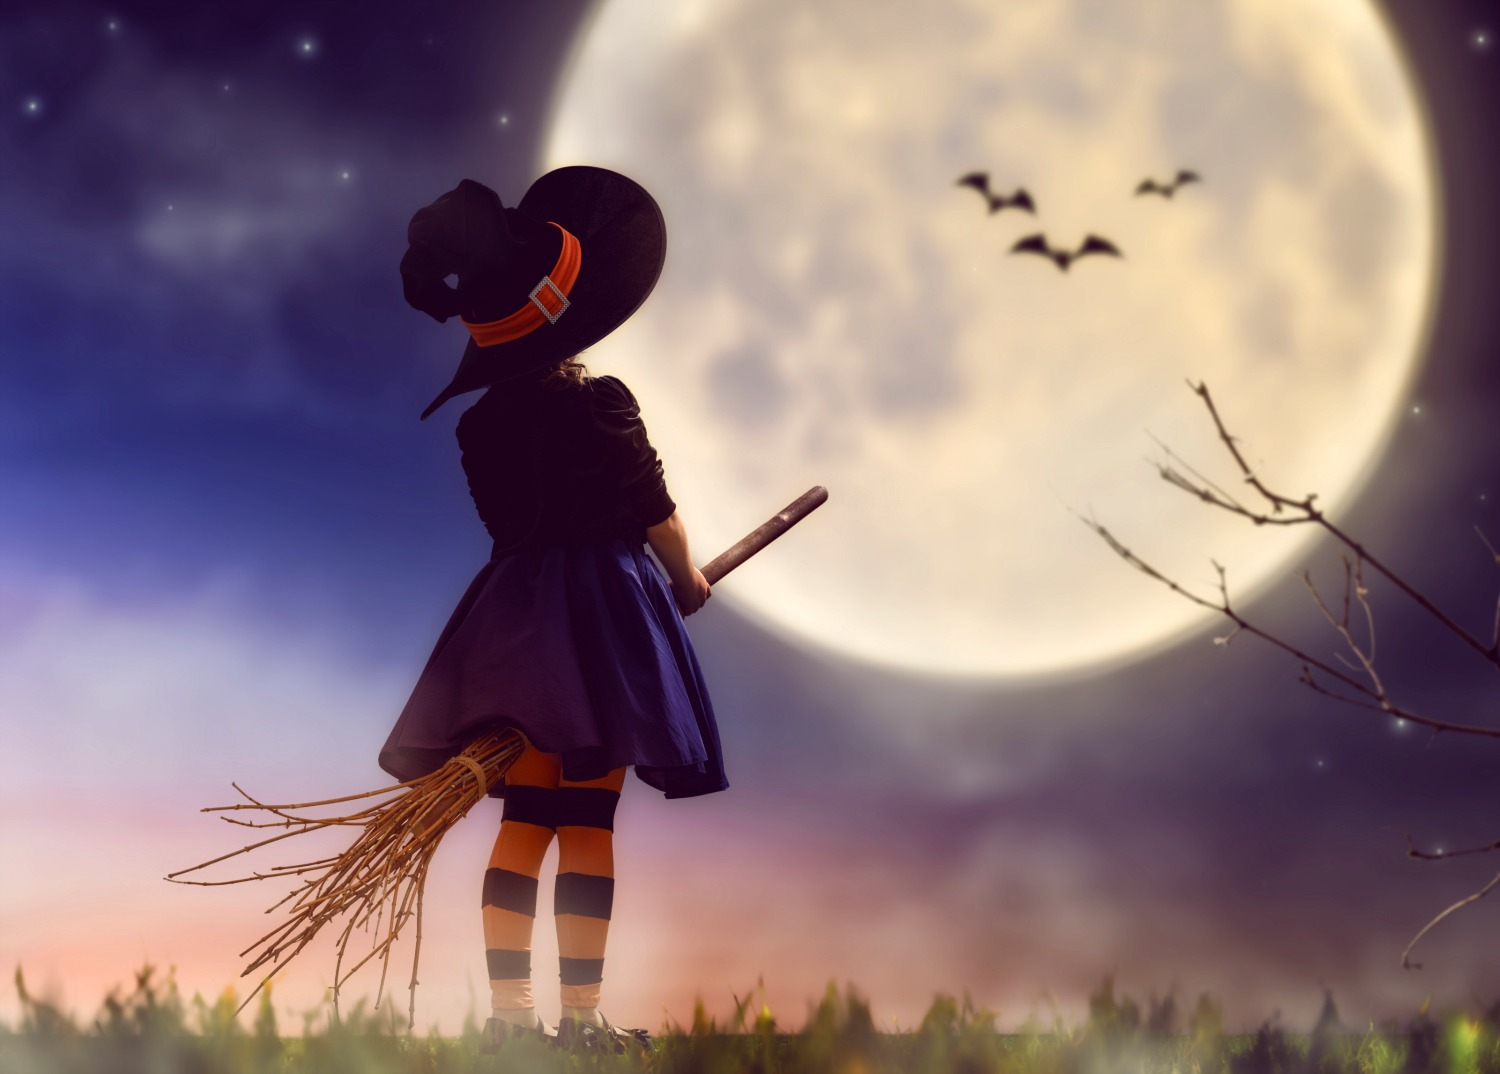 Girl in witch costume on a broomstick looking up to a moon with bats in silhouette - my top Halloween days out in the UK with kids